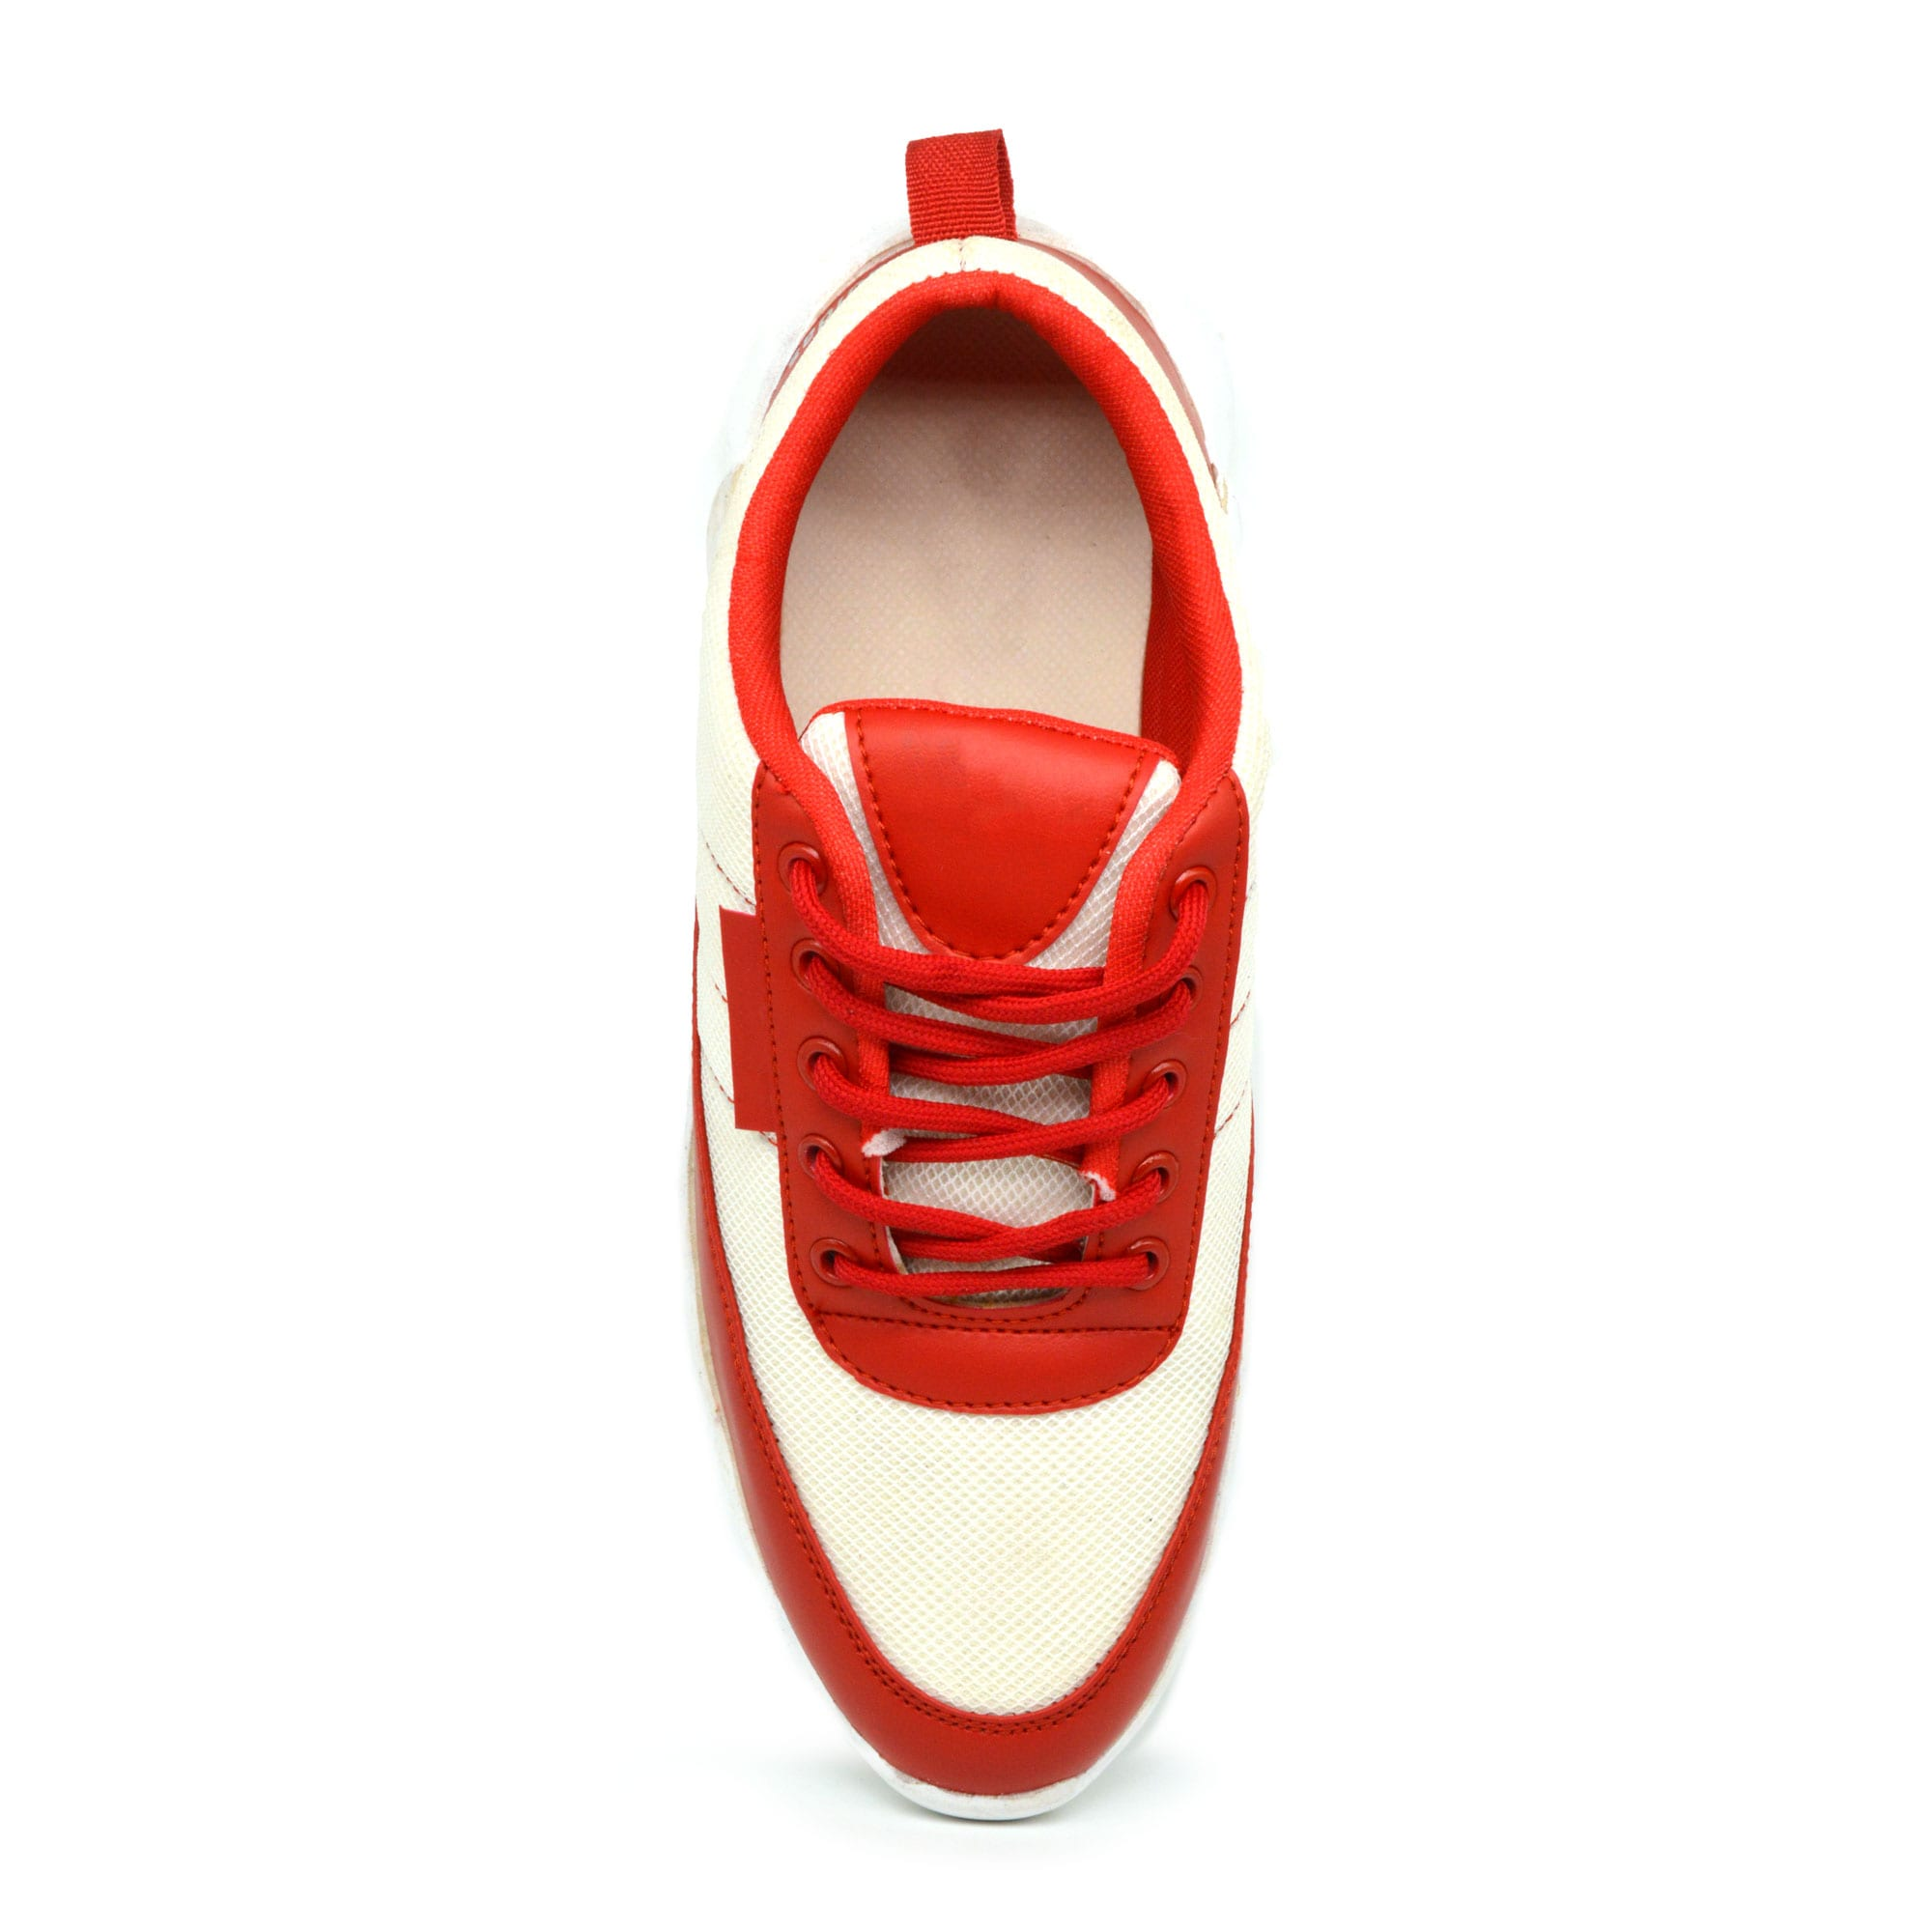 IMCOLUS23.170_RED  OUTDOOR WEAR & FLEXIBLE MENS Sports Shoes SHOES  IMCOLUS23.170_RED (RED,6TO10,8 PAIR)